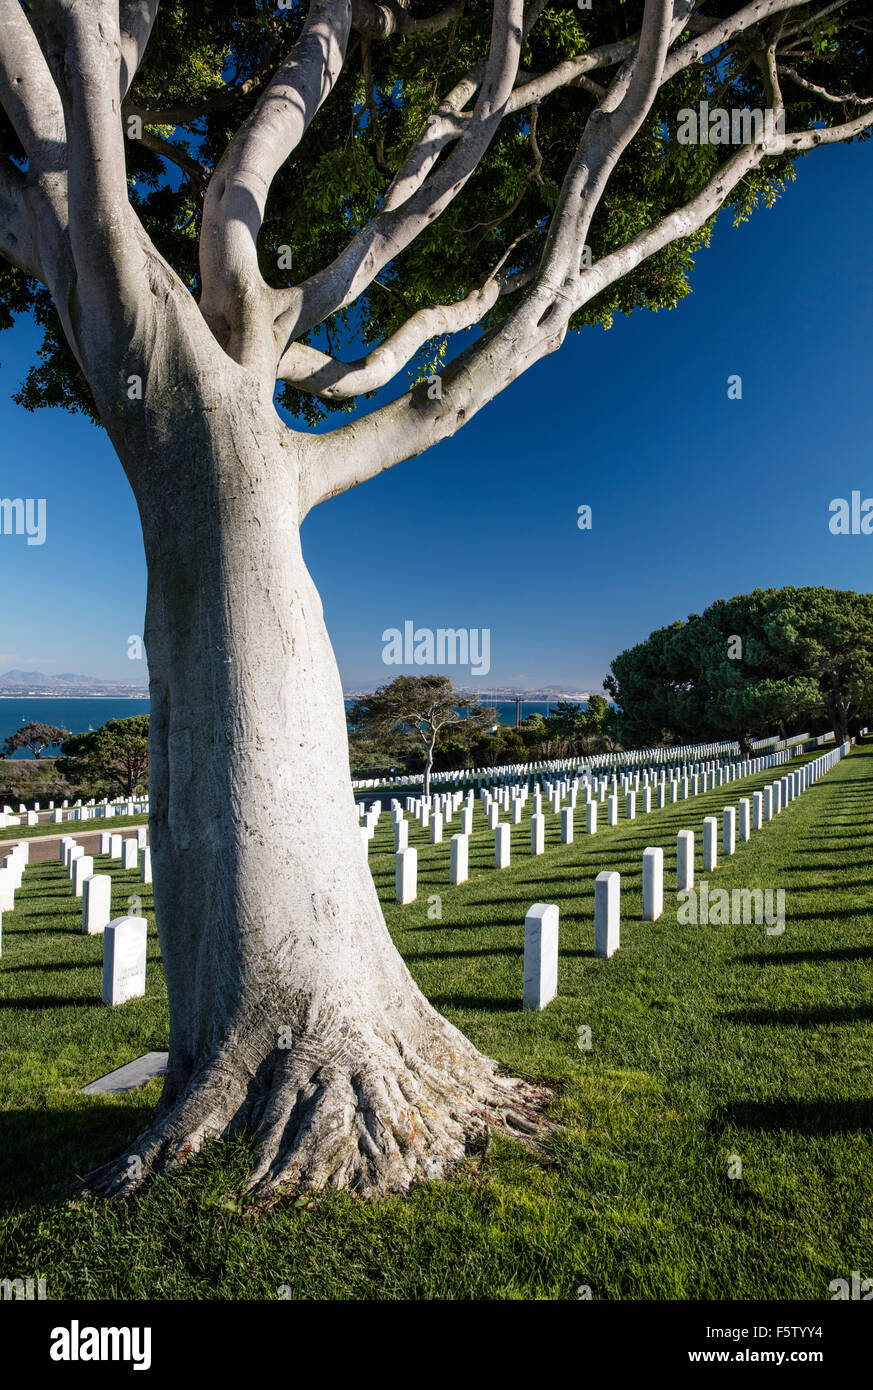 Rows of grave markers on the manicured lawn at Ft Rosecrans National Cemetery, Point Loma, San Diego, California - Stock Image